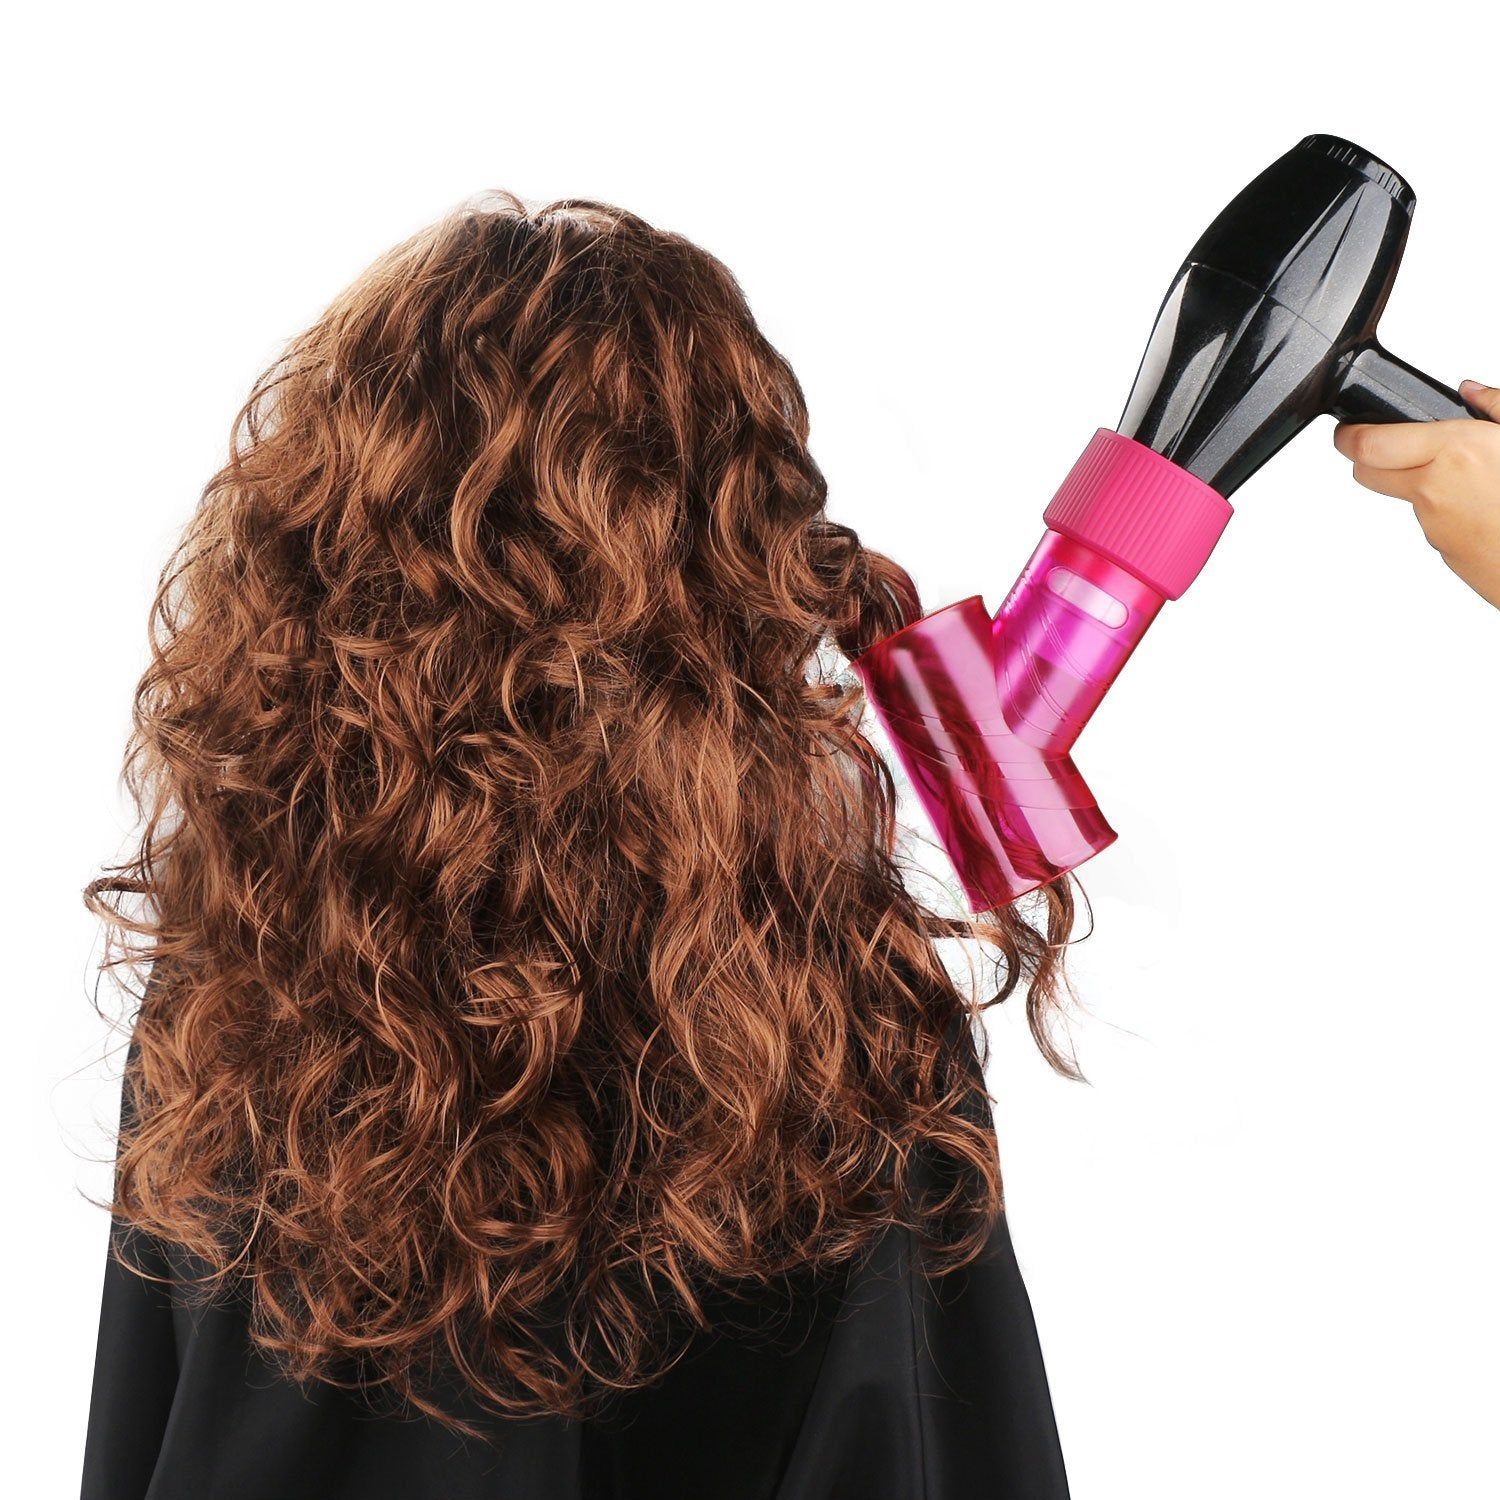 Wind Spin Hair Dryer Diffuser for Curly Wavy